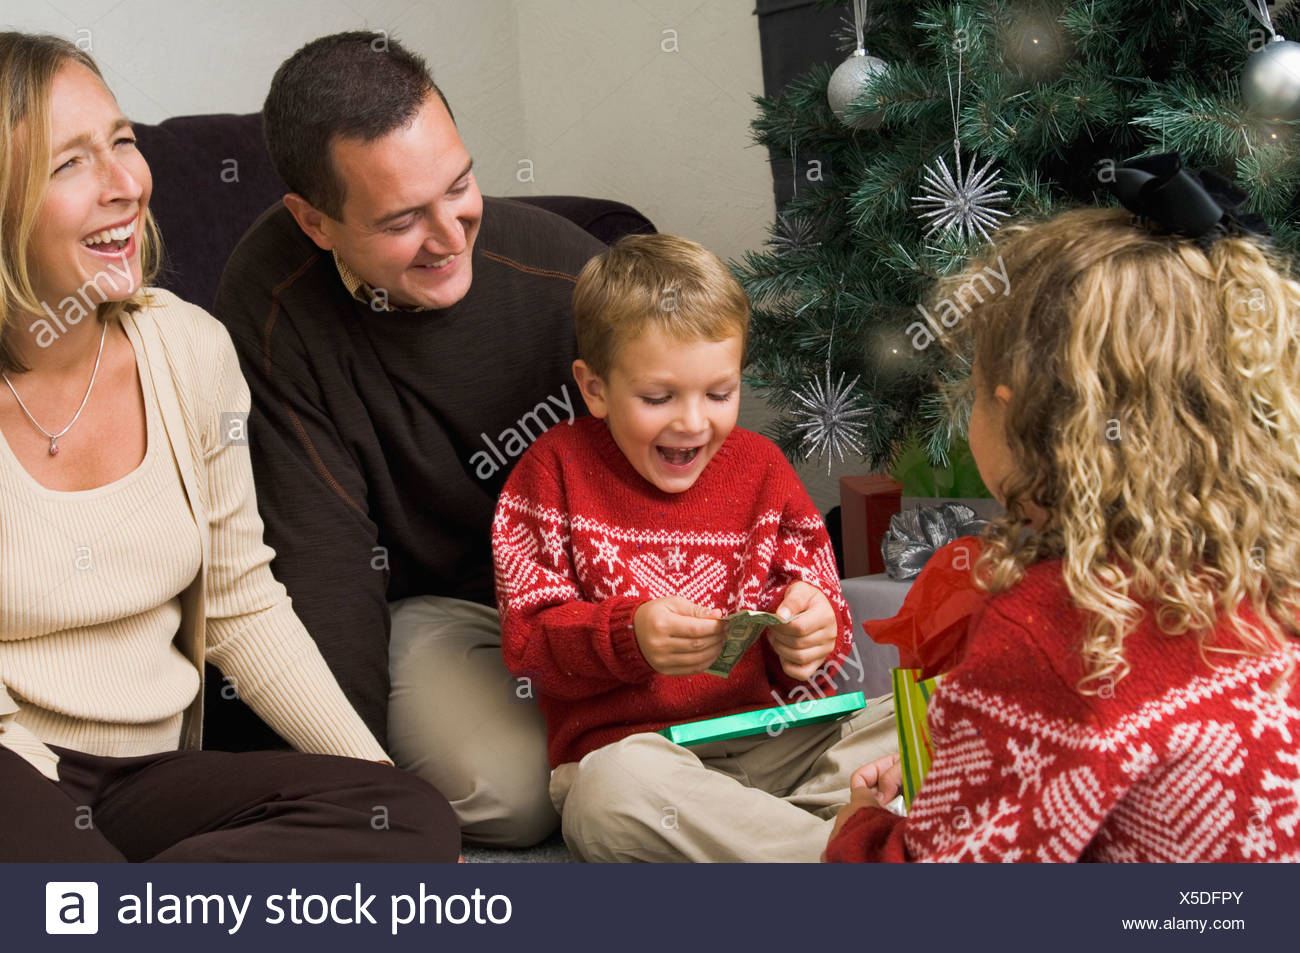 Family opening Christmas gifts Stock Photo: 278736947 - Alamy